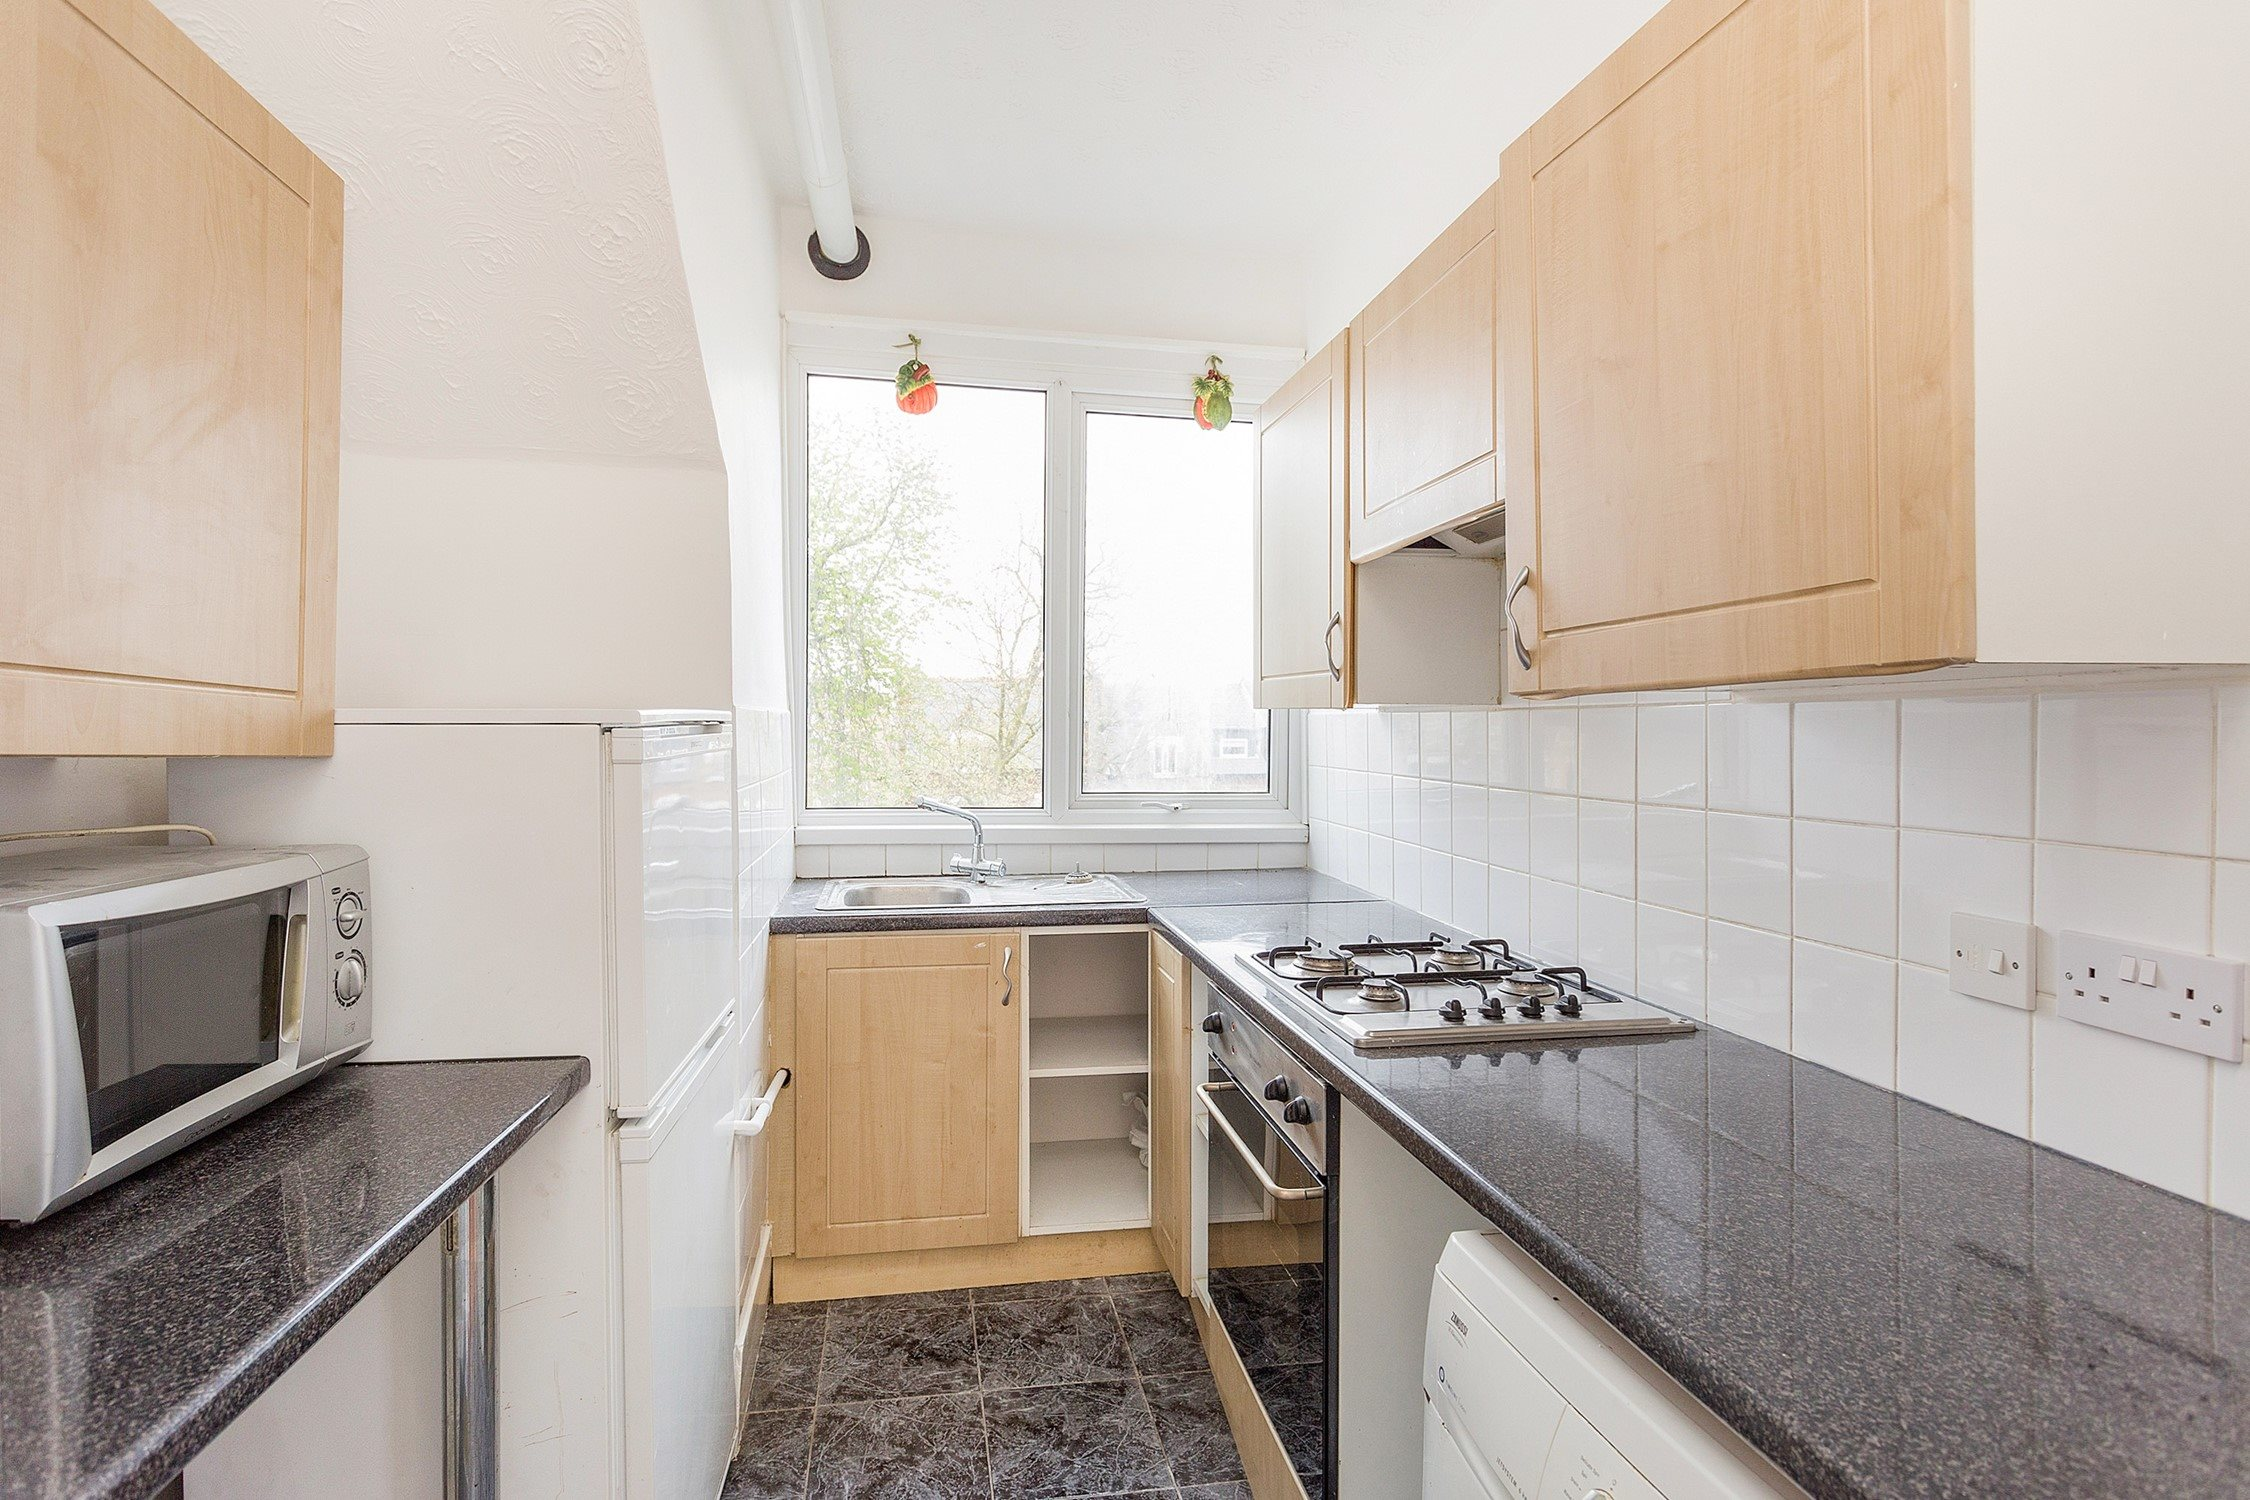 Portico - 3 Bedroom Flat recently sold in Tulse Hill: Christchurch ...